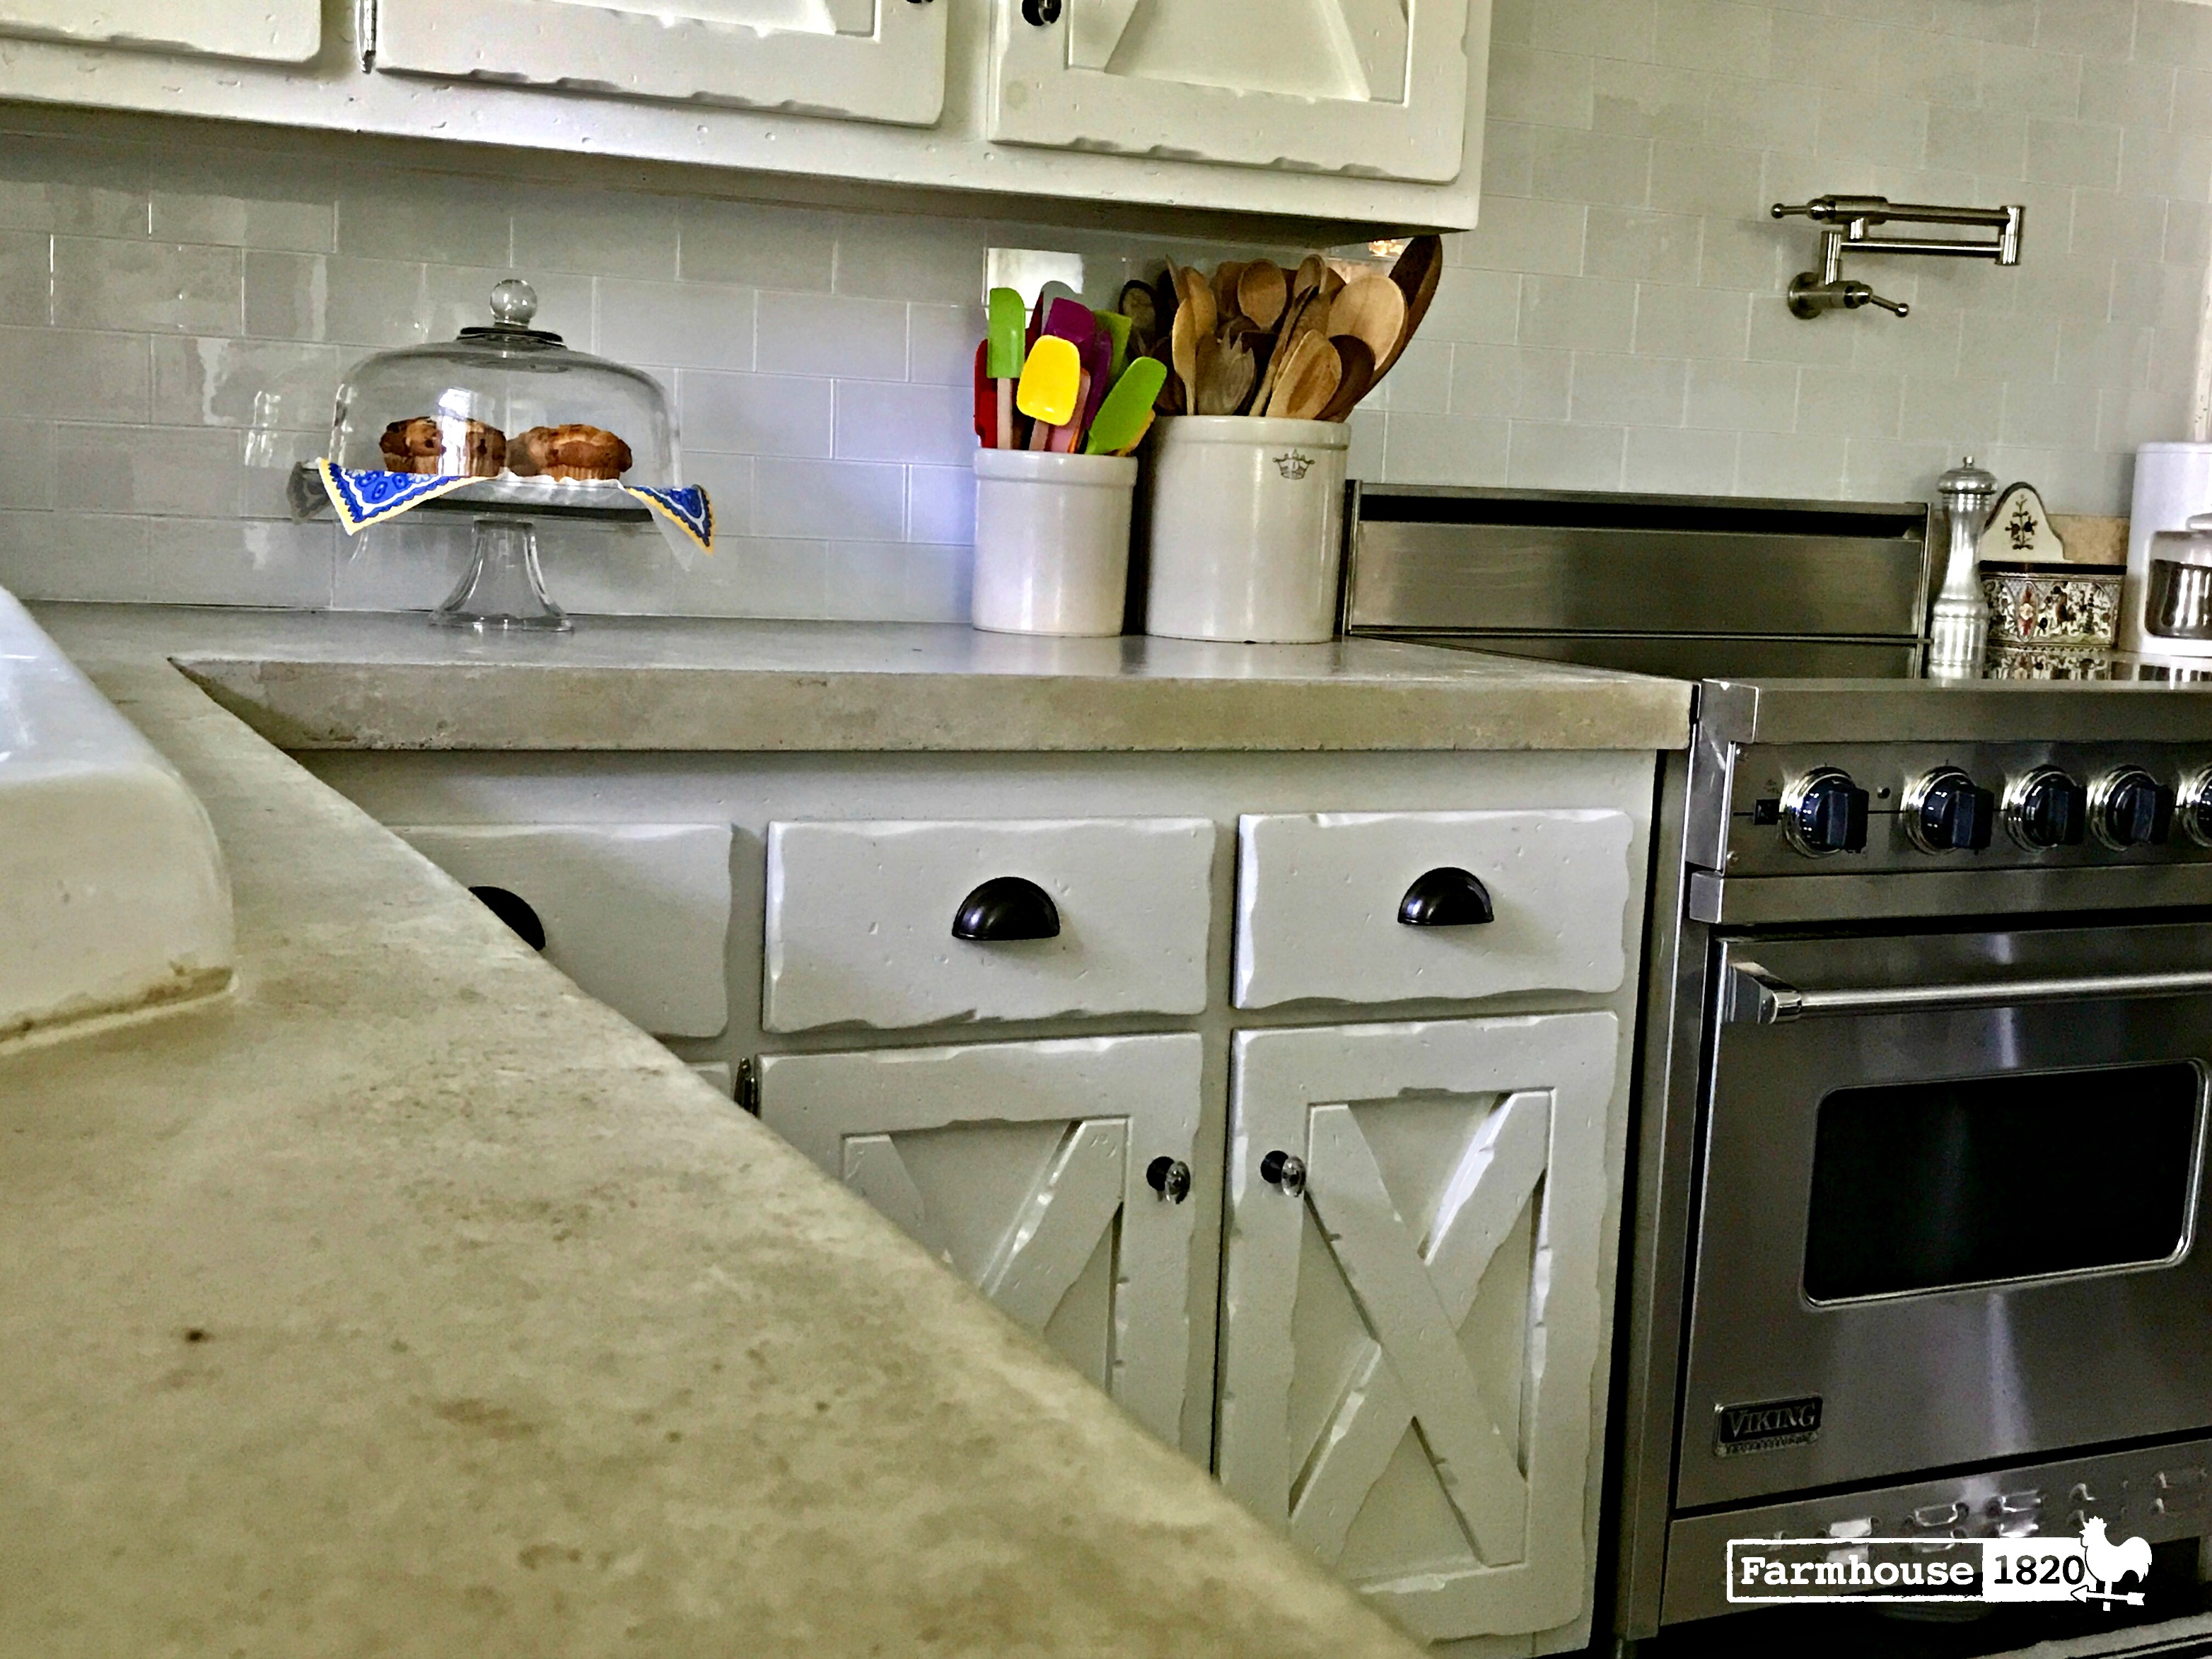 The Kitchen at Farmhouse 1820 - new concrete countertops and Liberty Hardware